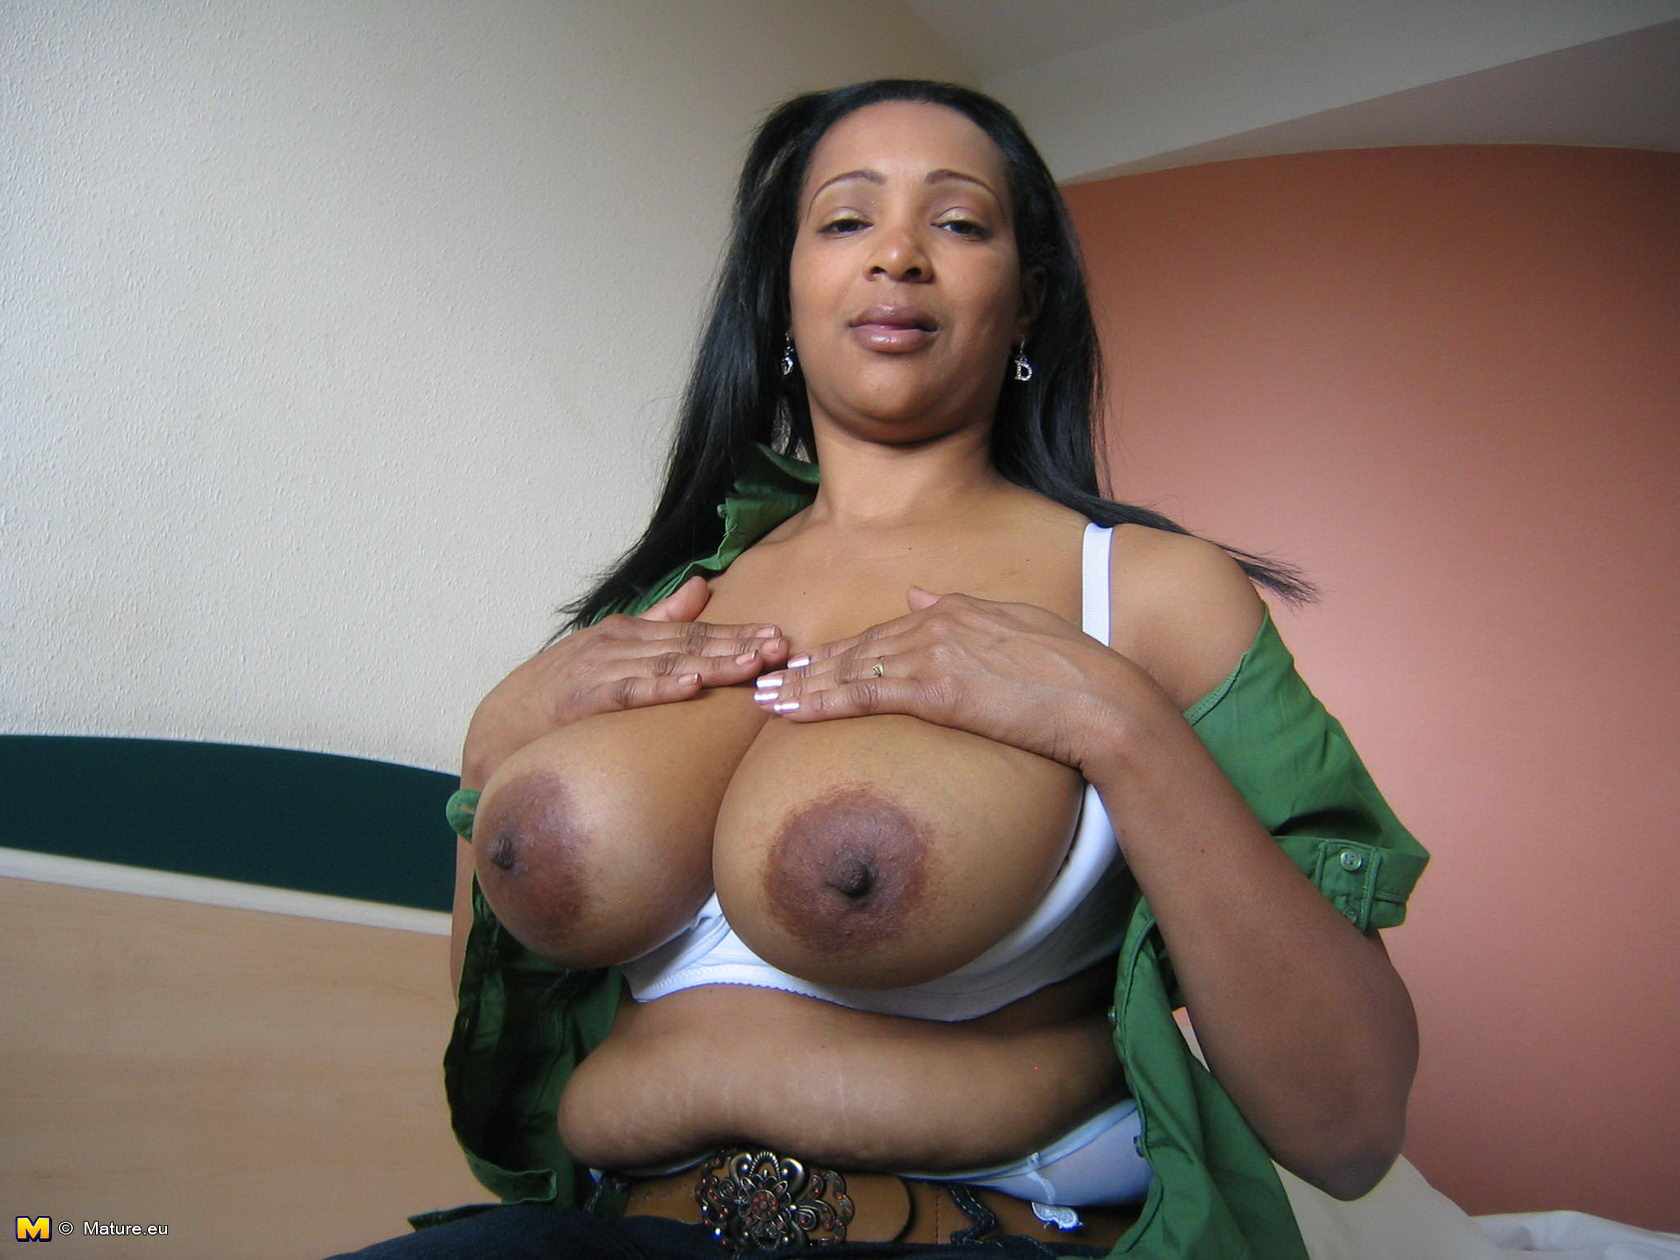 Mature ebony big tits gallery Kinky Mature Camila Loves Showing Her Black Tits